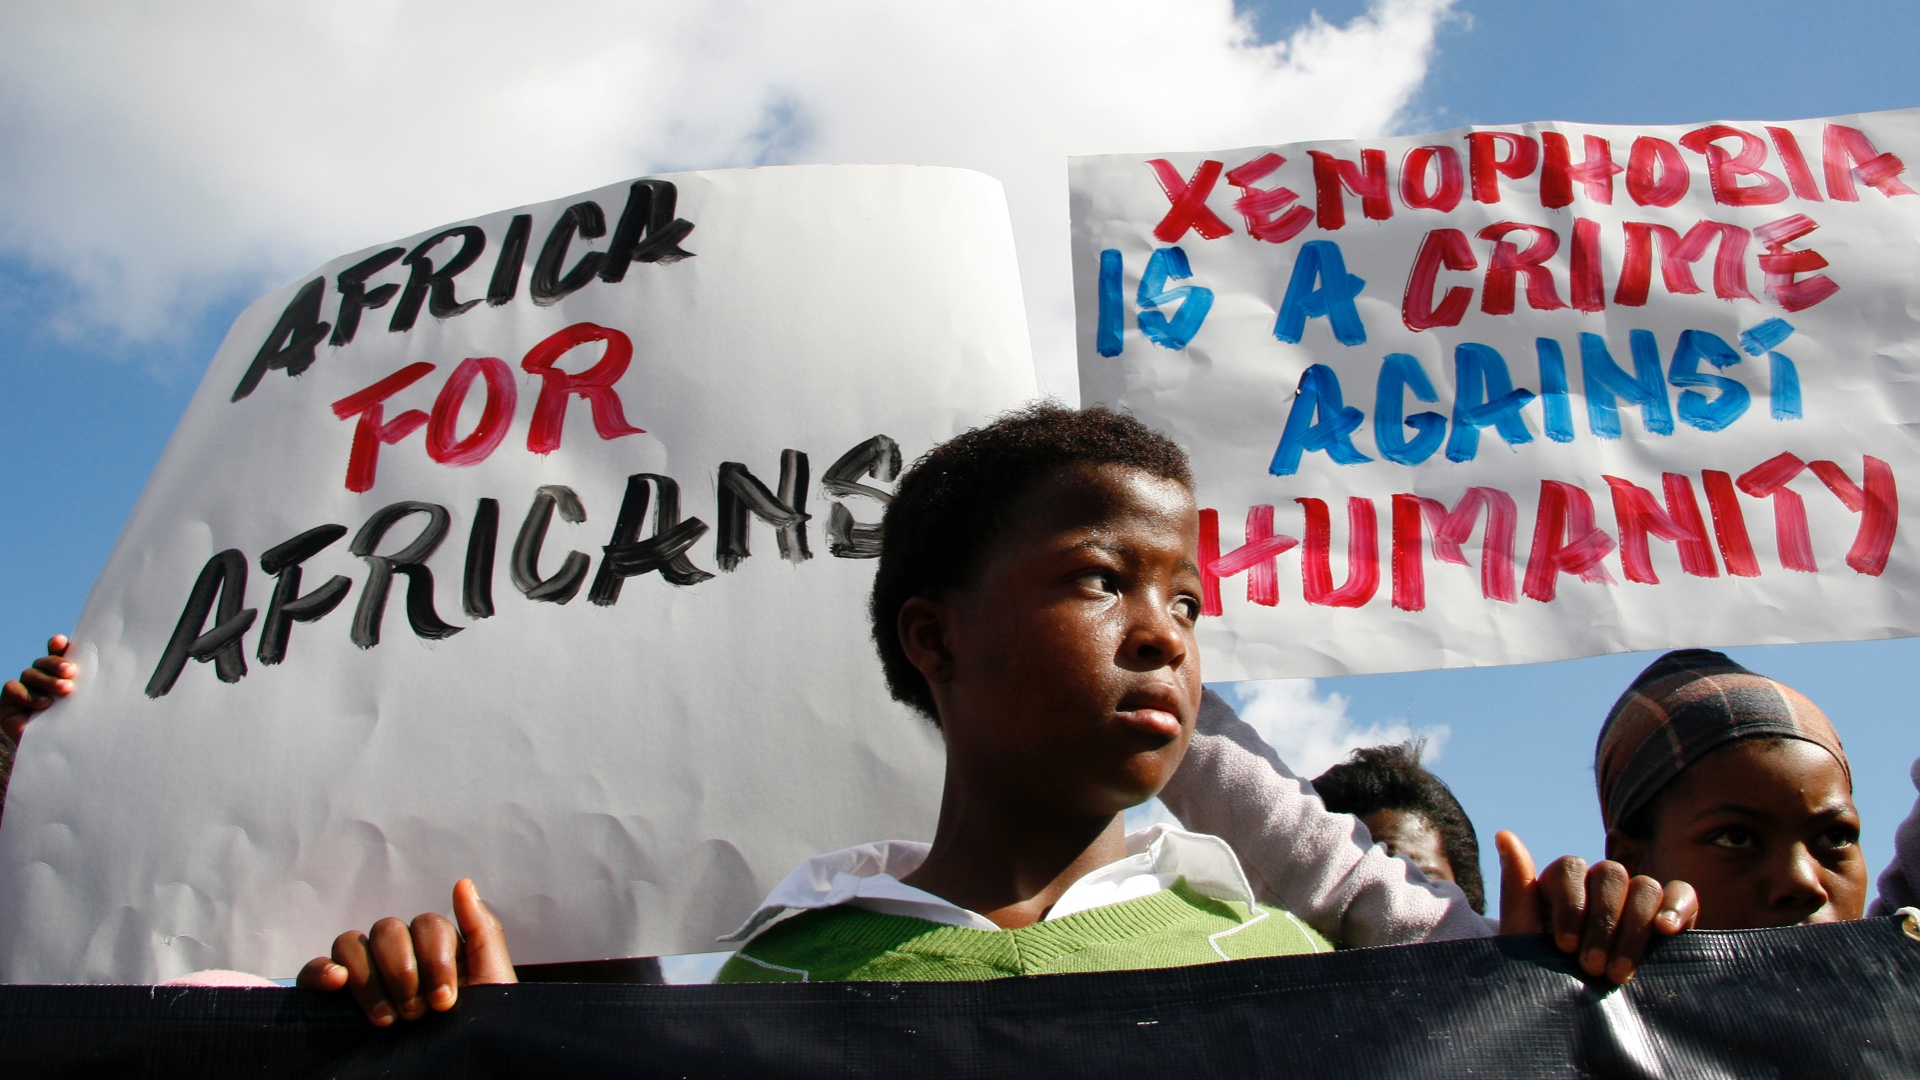 'There will be blood': Xenophobia in S Africa routine and lethal